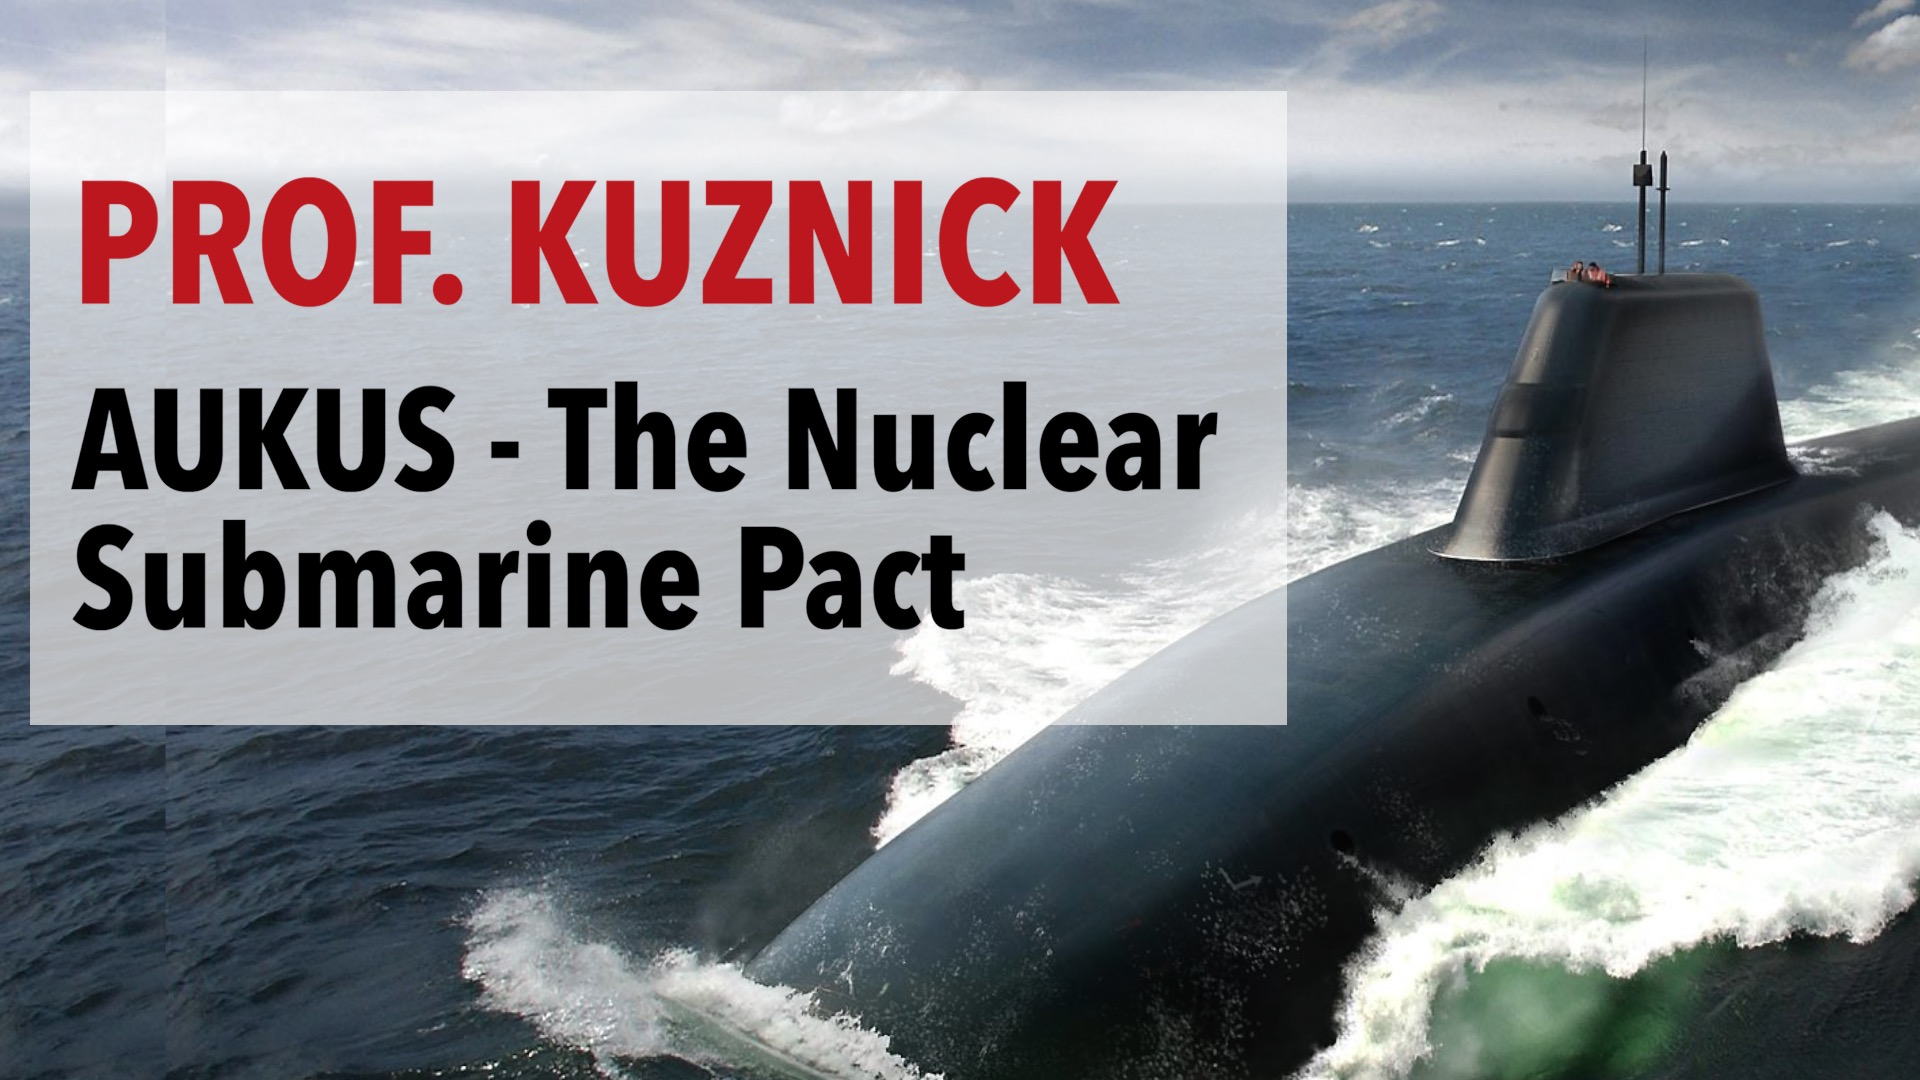 AUKUS - The Nuclear Submarine Pact between the US, UK & Australia